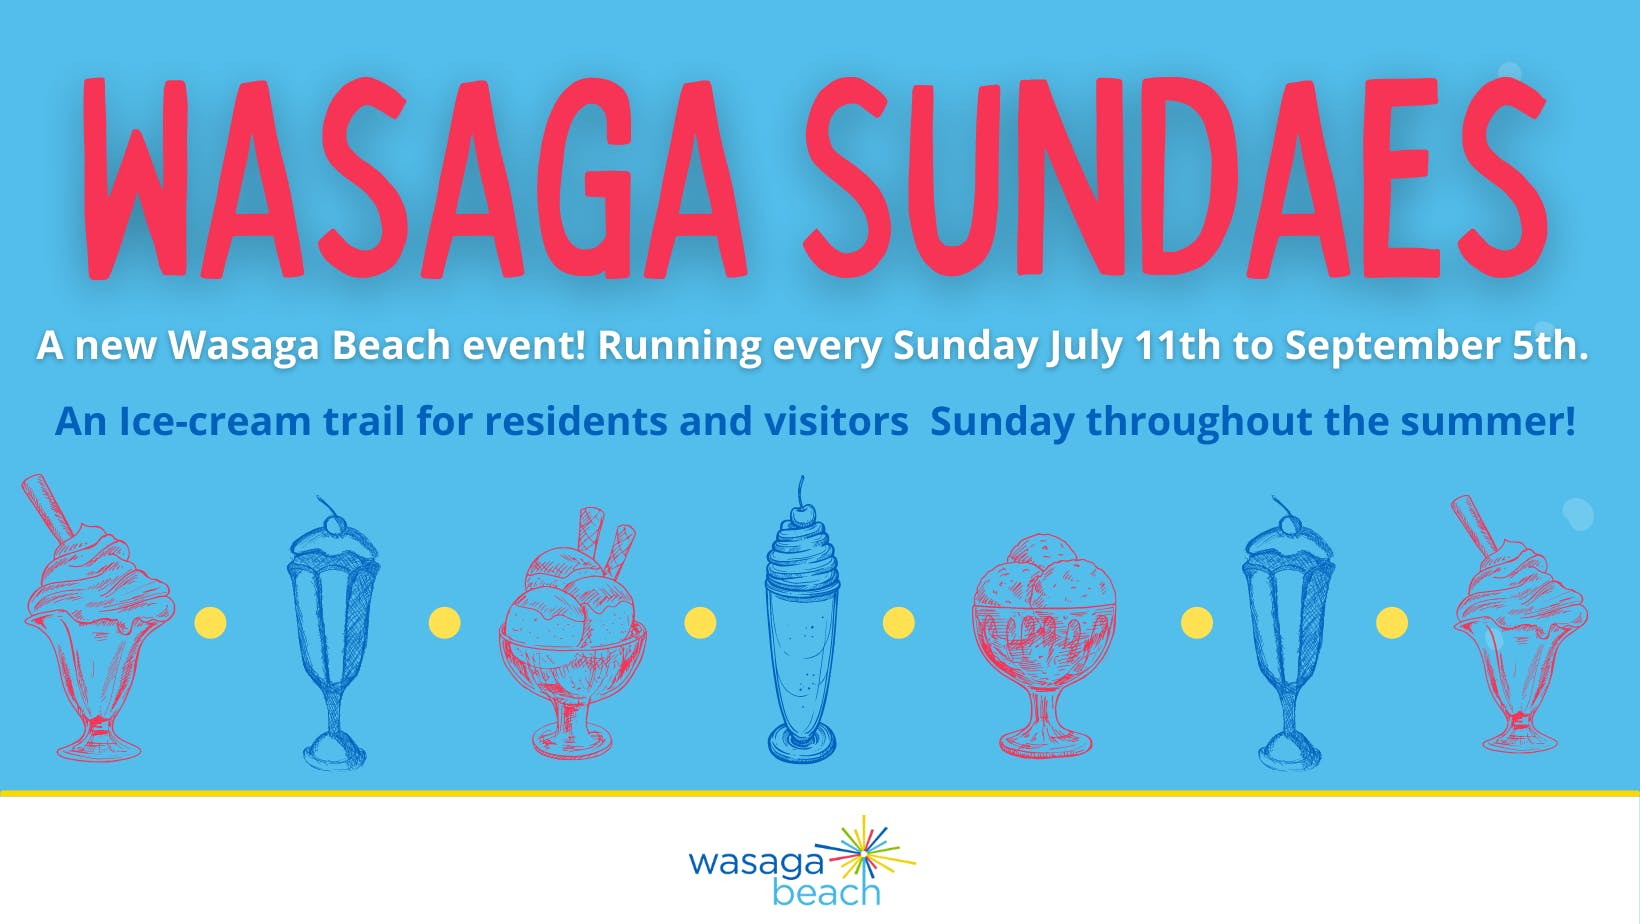 Wasaga Sundaes -  a new Wasaga Beach event! Running every Sunday, July 11 to September 5th. An Ice-cream trail for residents and visitors Sundays thought the summer!